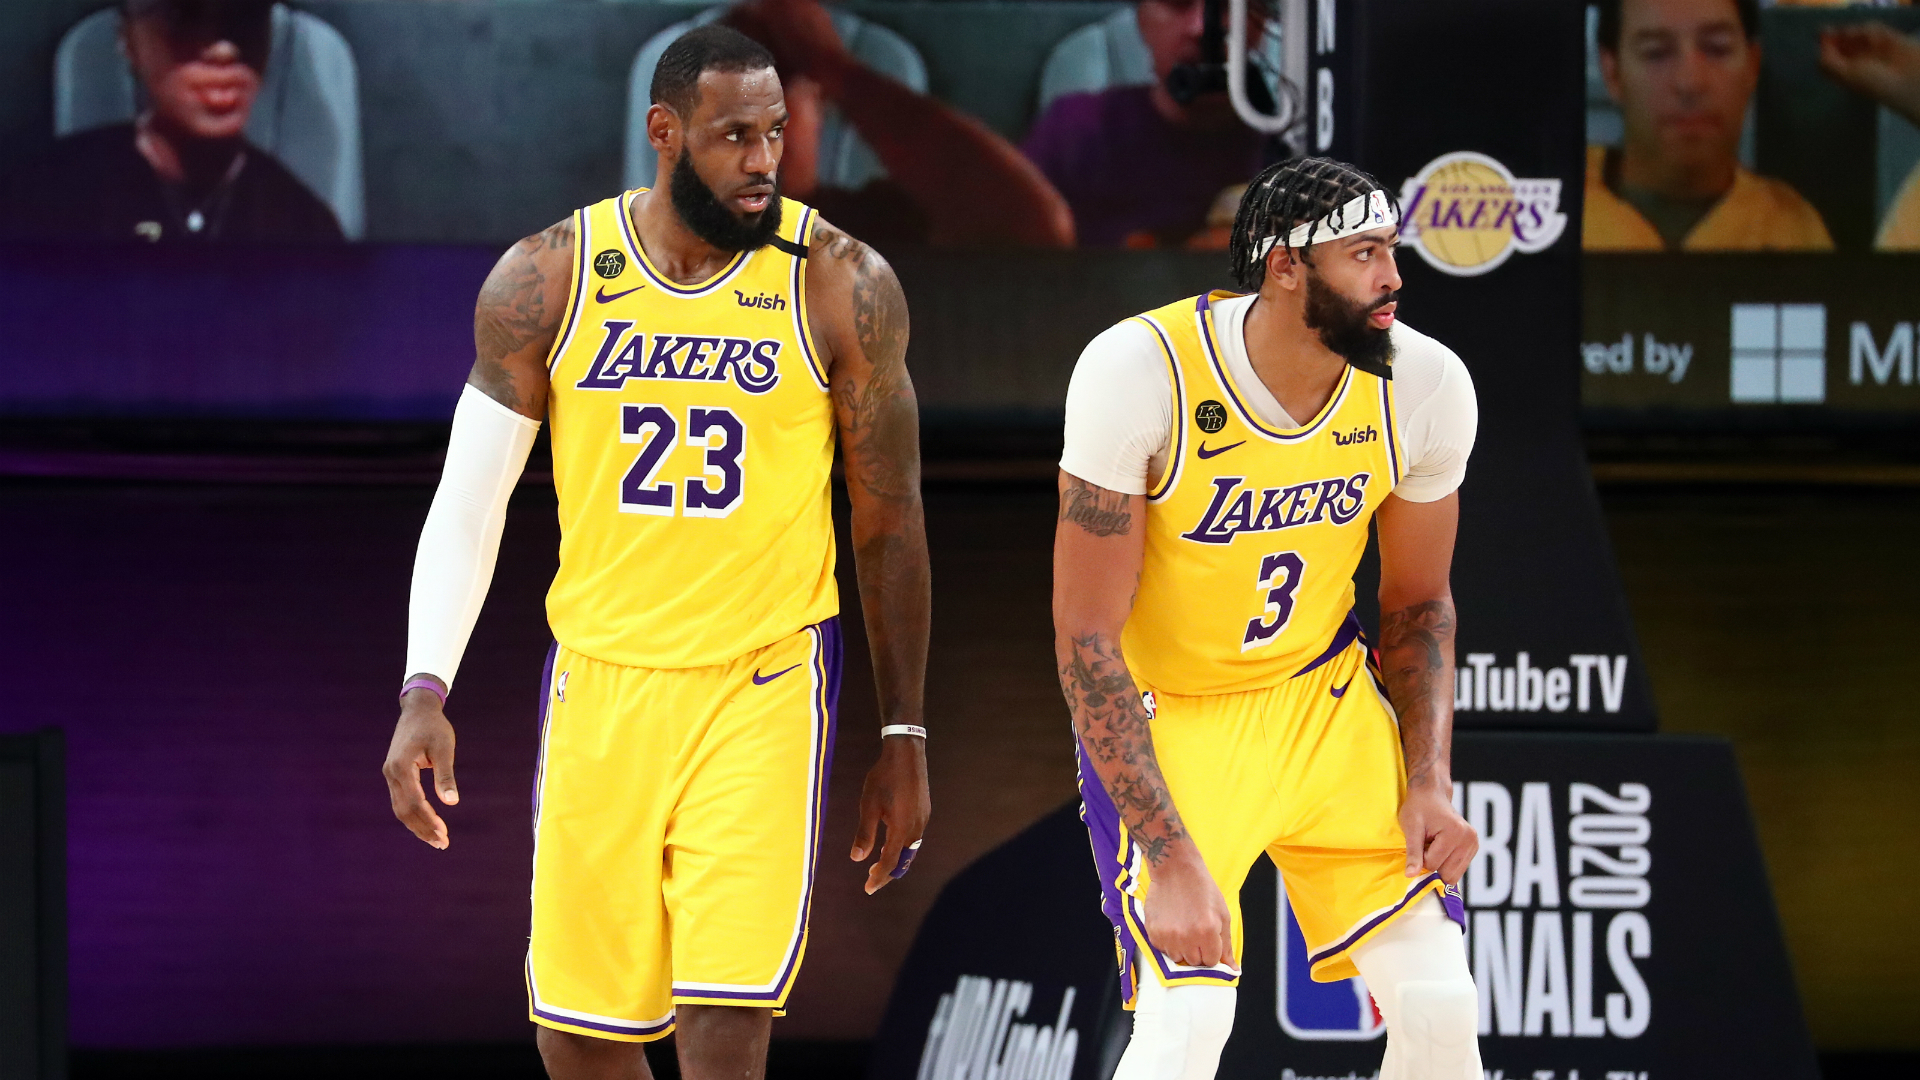 NBA Finals: We've got LeBron but Anthony Davis is the best in the world - Lakers' Markieff Morris